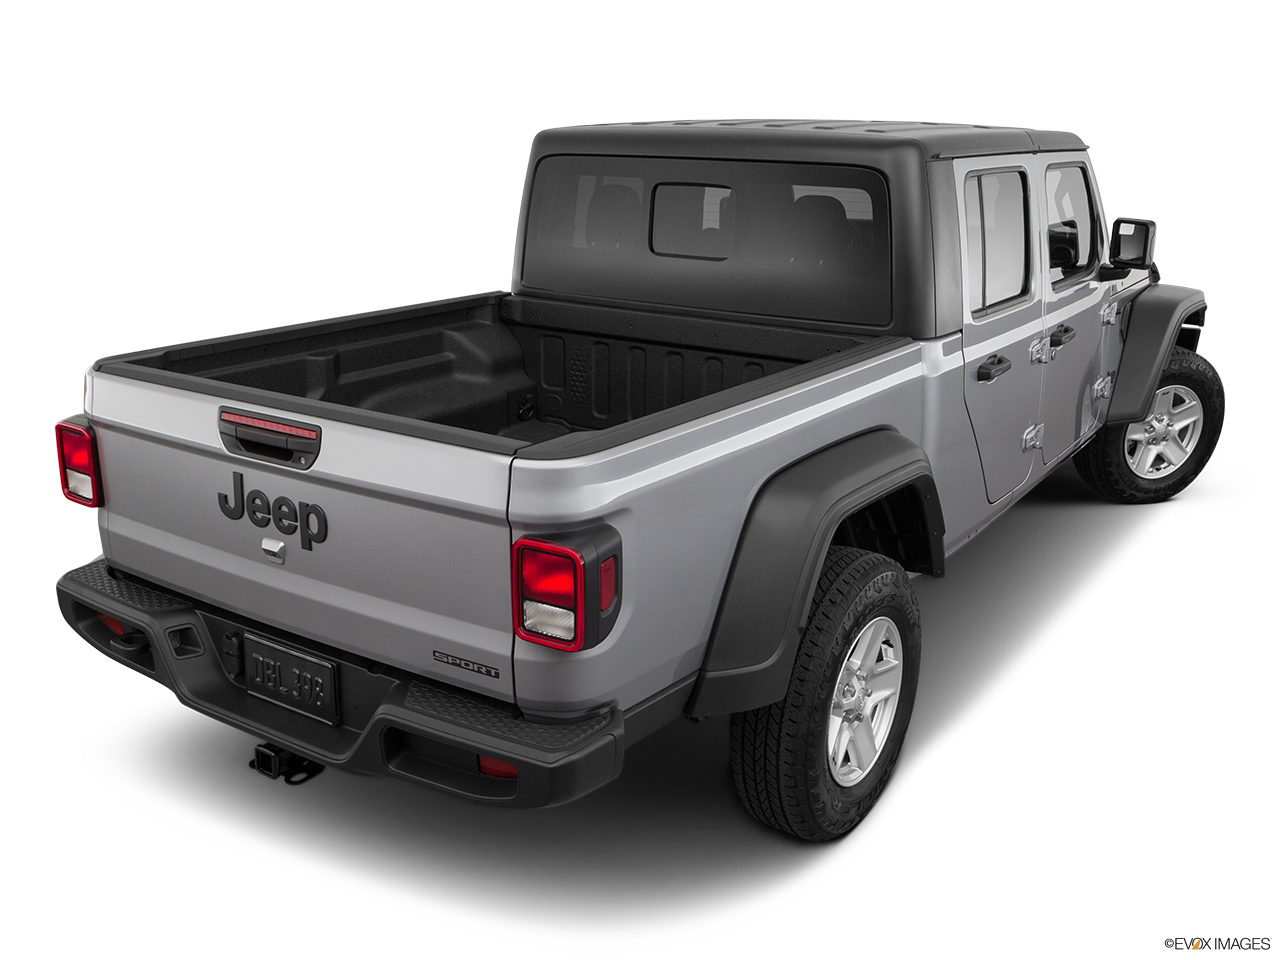 2020 Jeep Gladiator Sport S Rear 3/4 angle view.